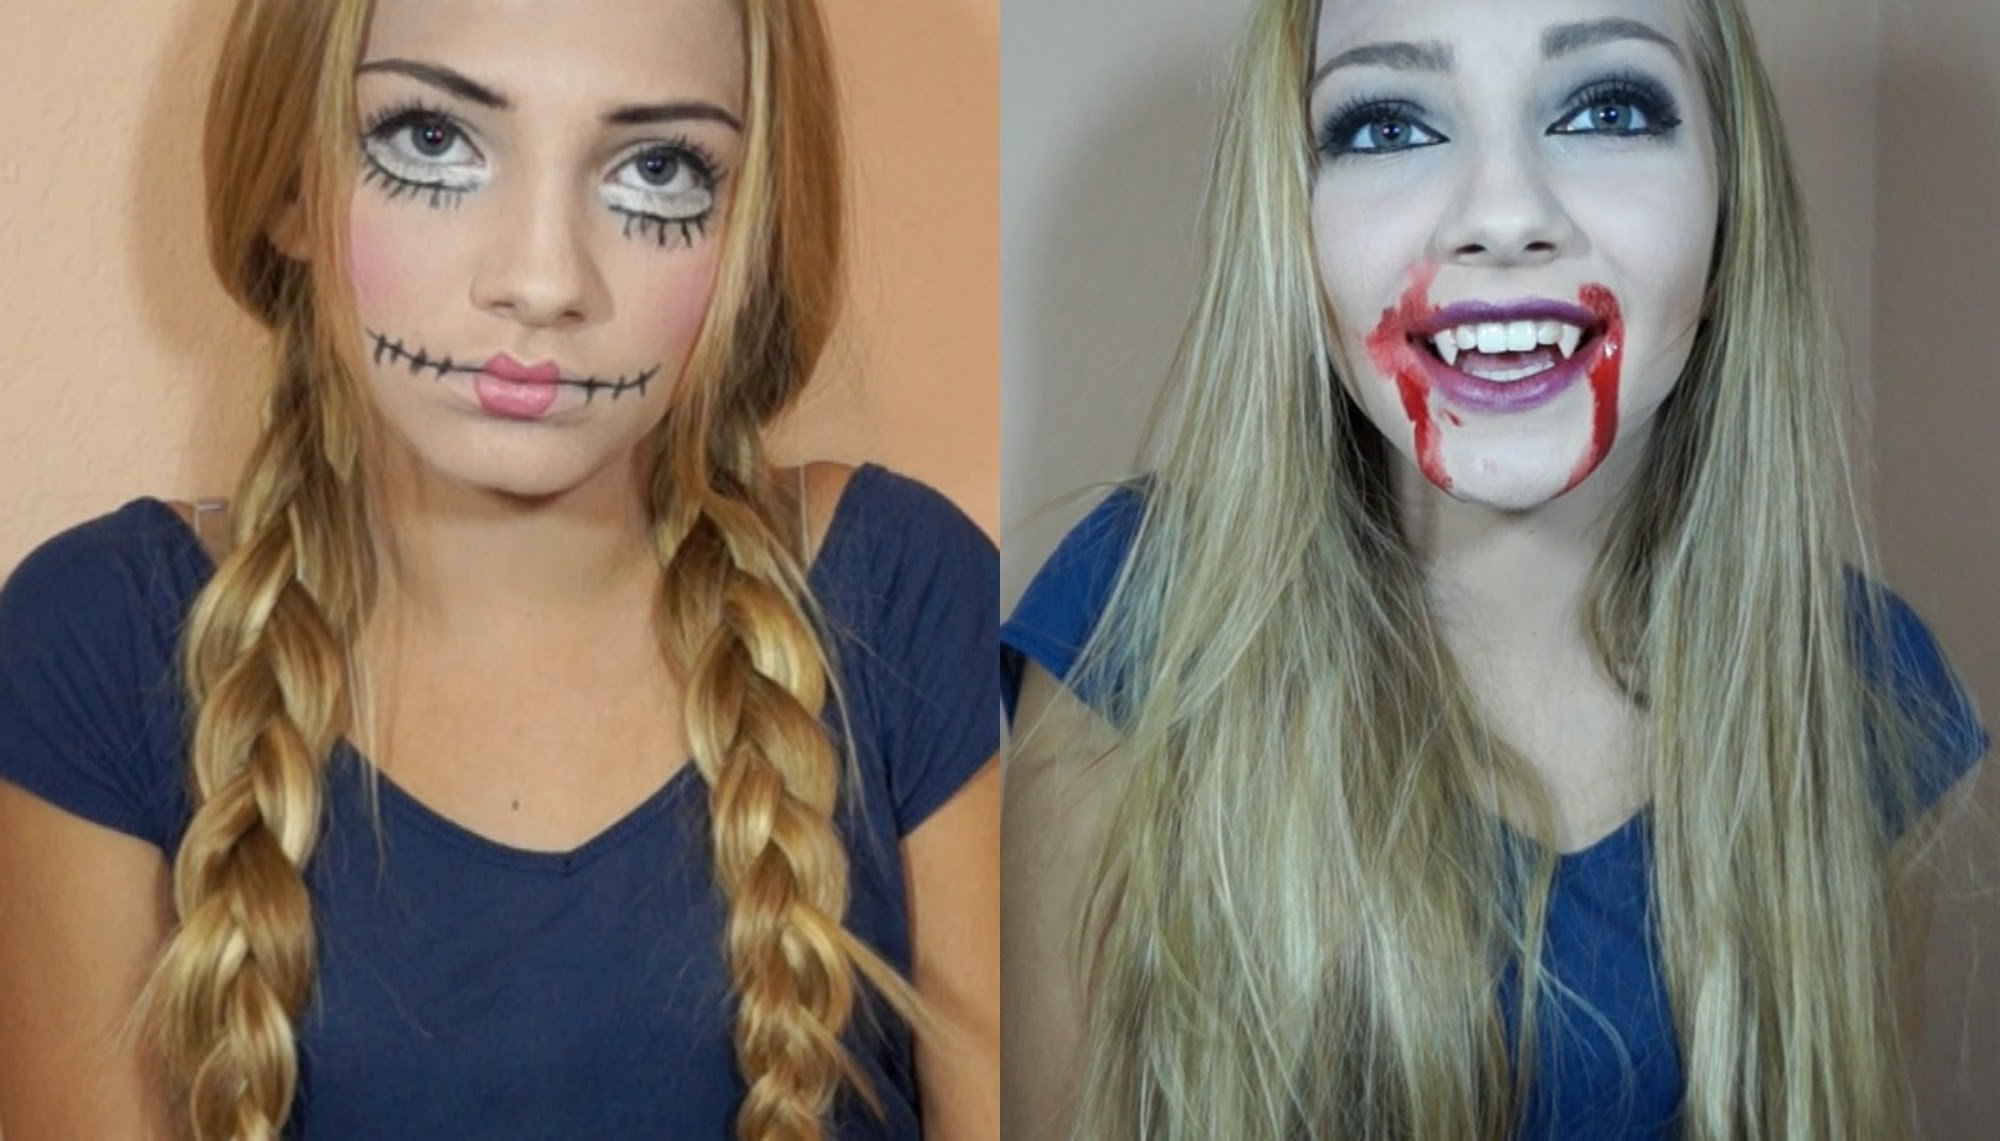 halloween costume ideas: creepy doll & vampire makeup and hair